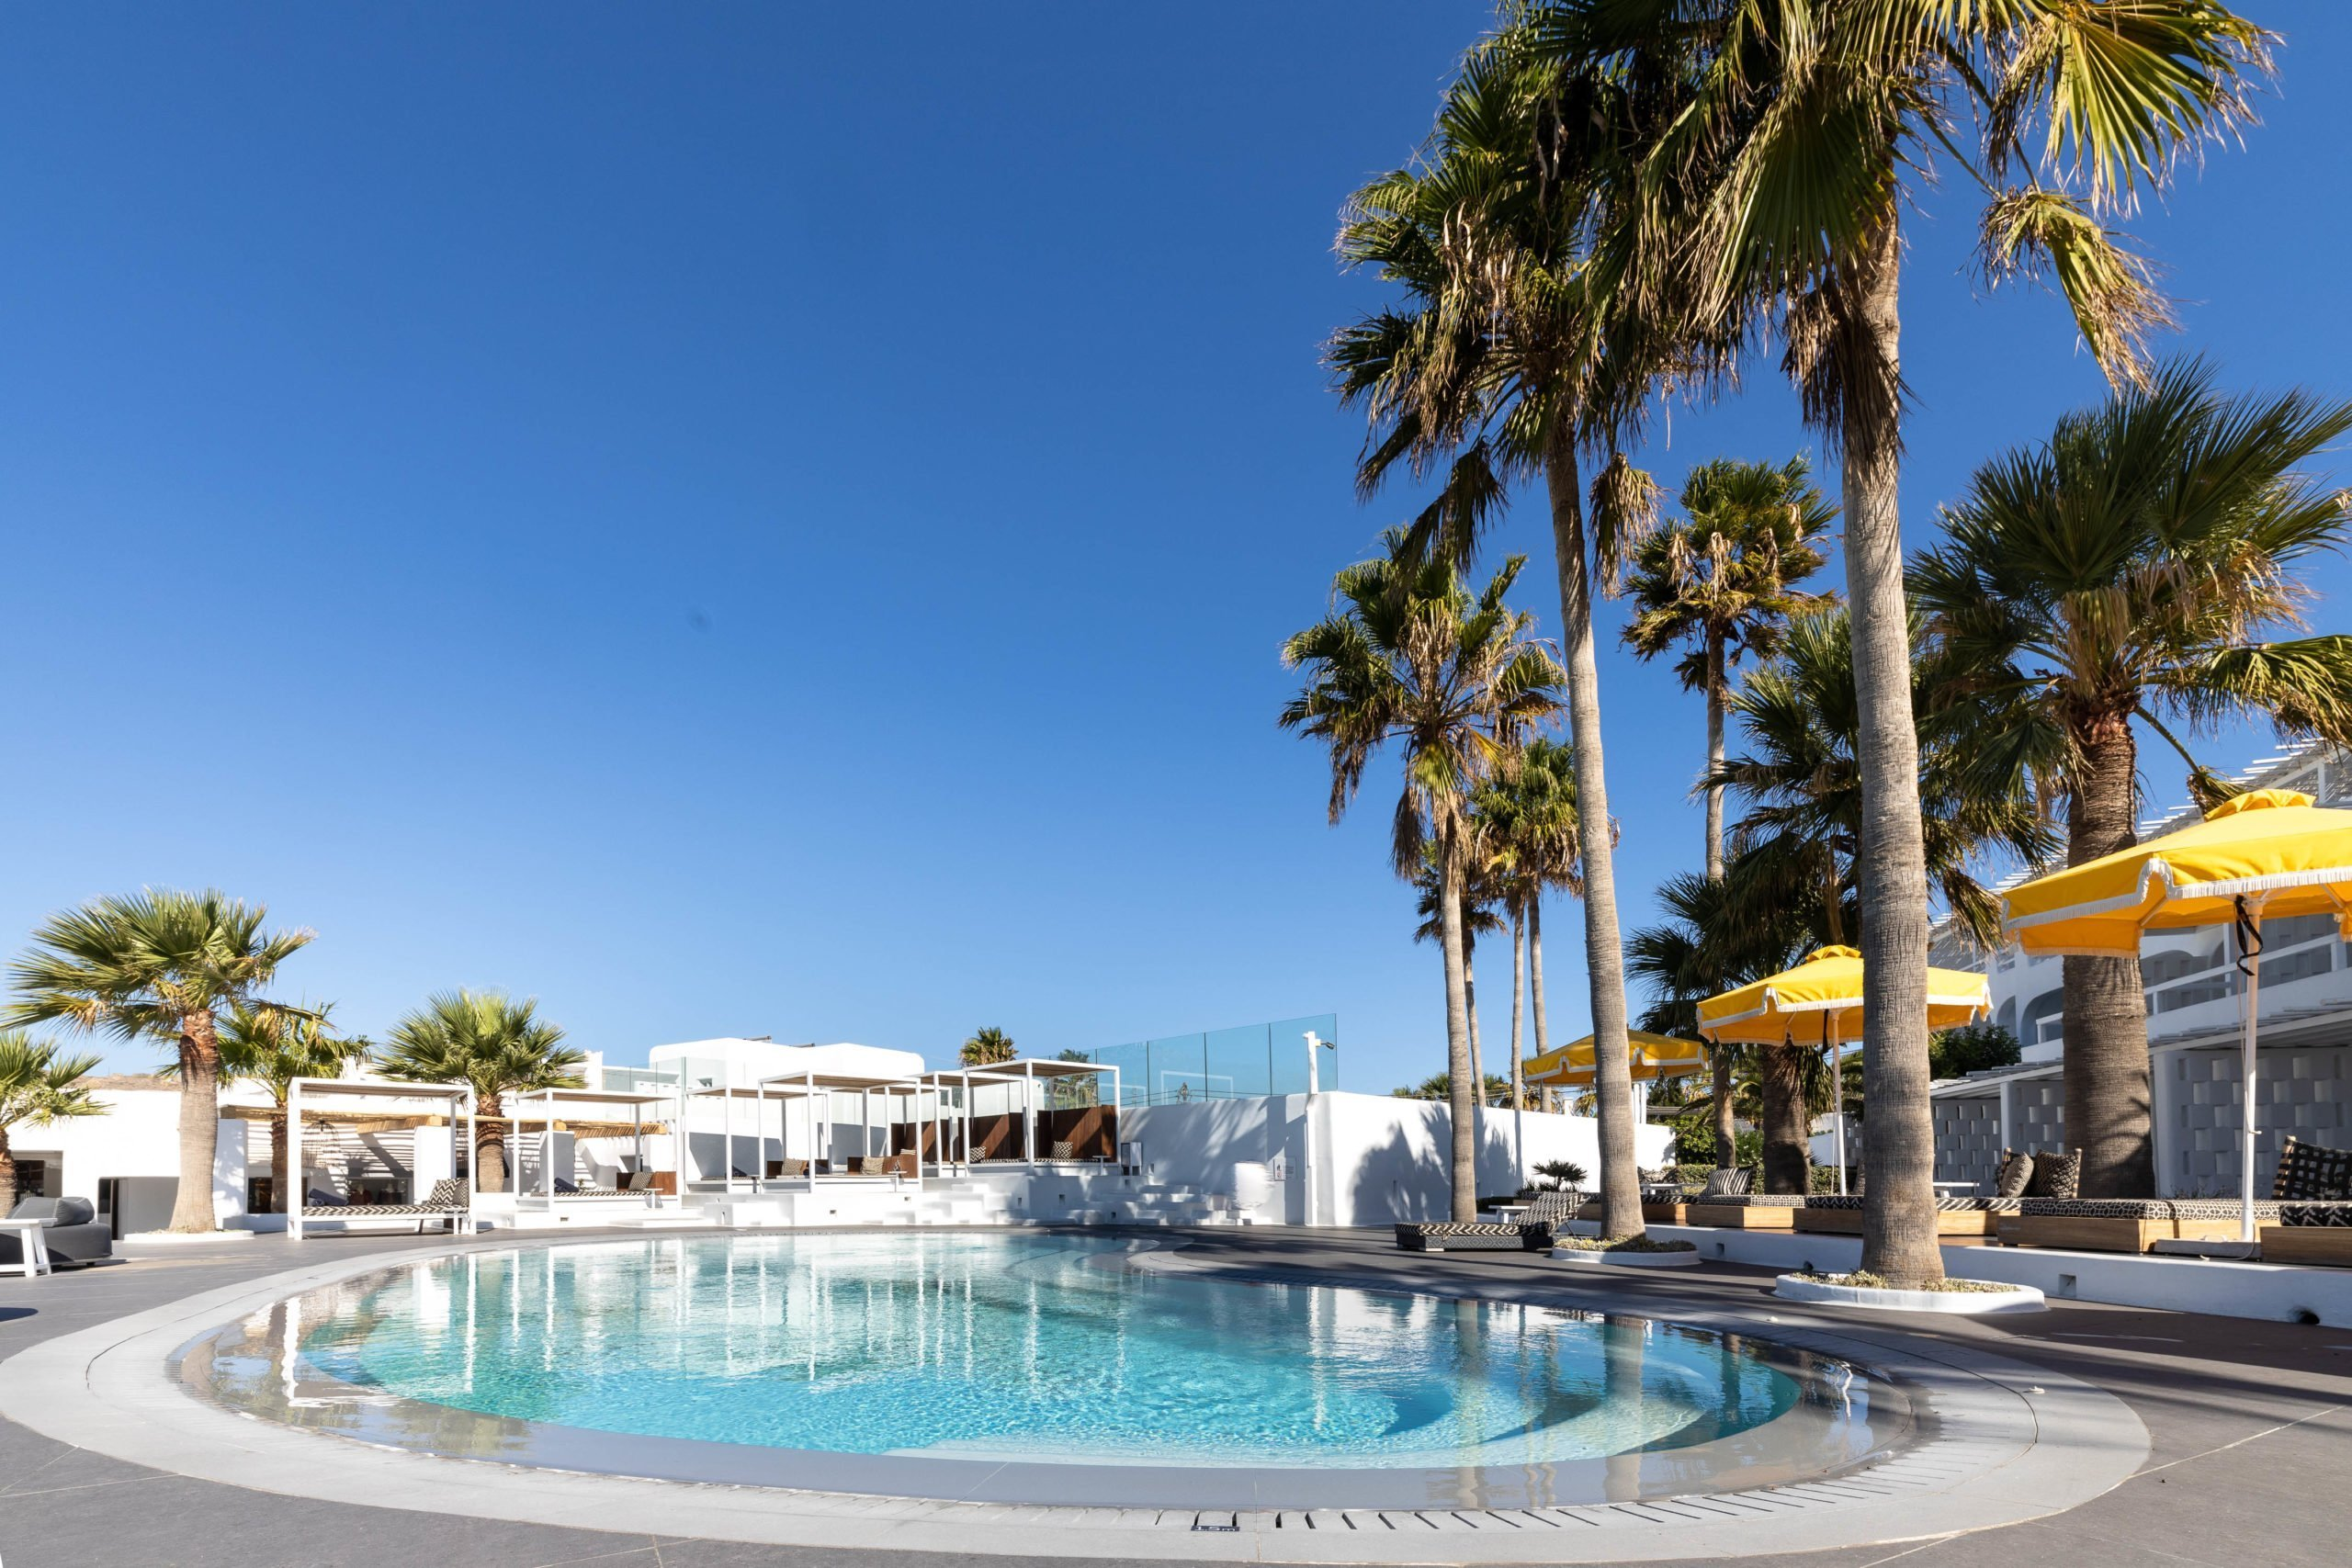 Crystal clear pool and tall palm trees at the garden of Mykonos Blanc Hotel.